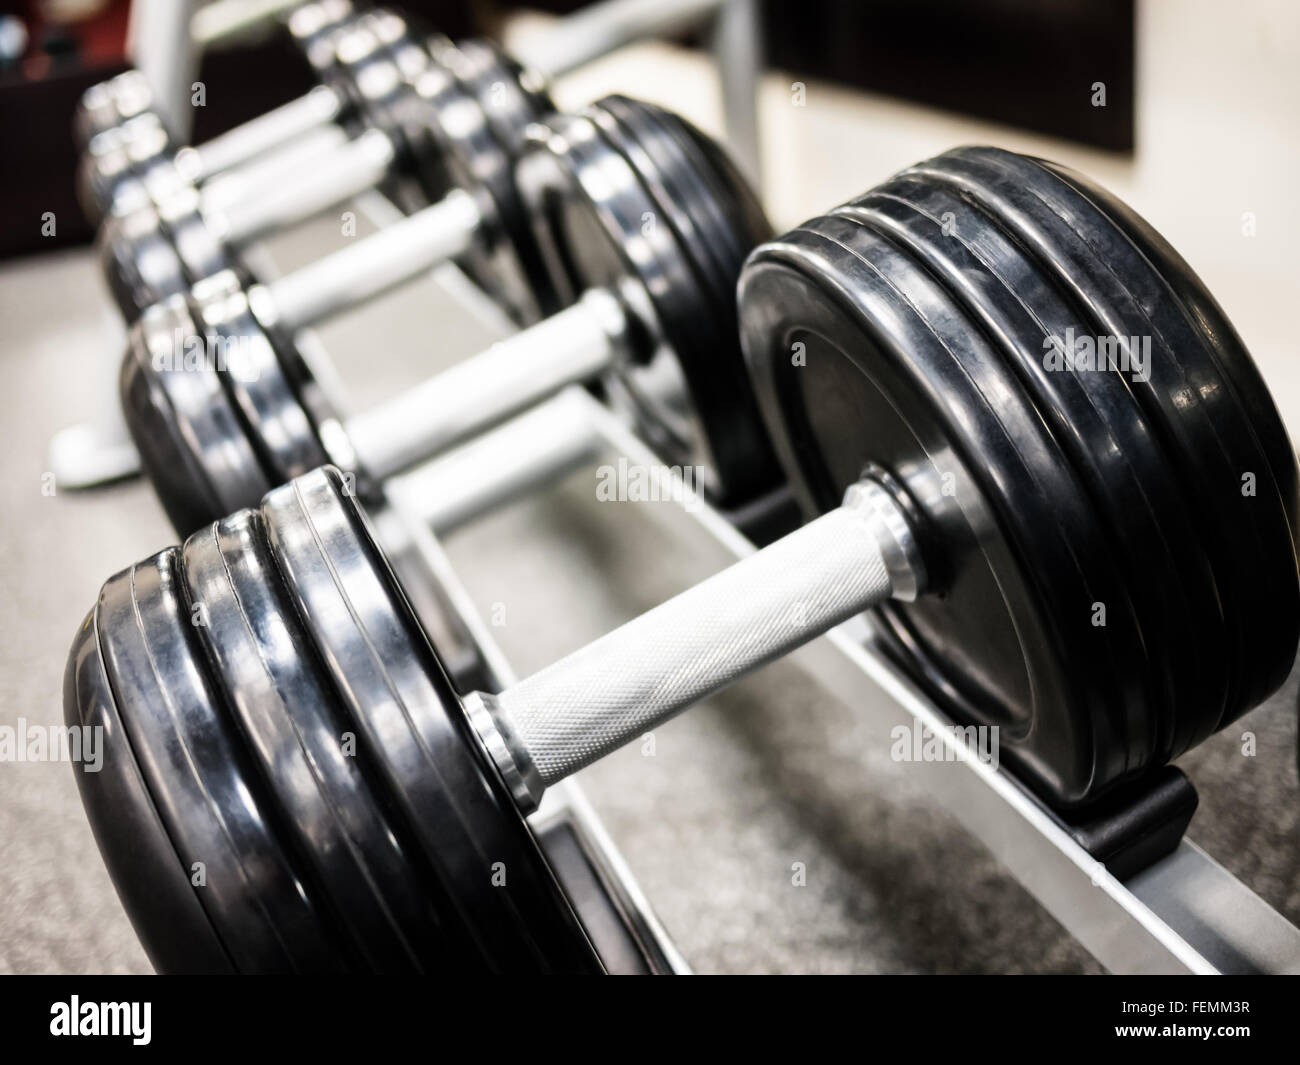 Healthclub gym dumbbell free weights on a rack - Stock Image